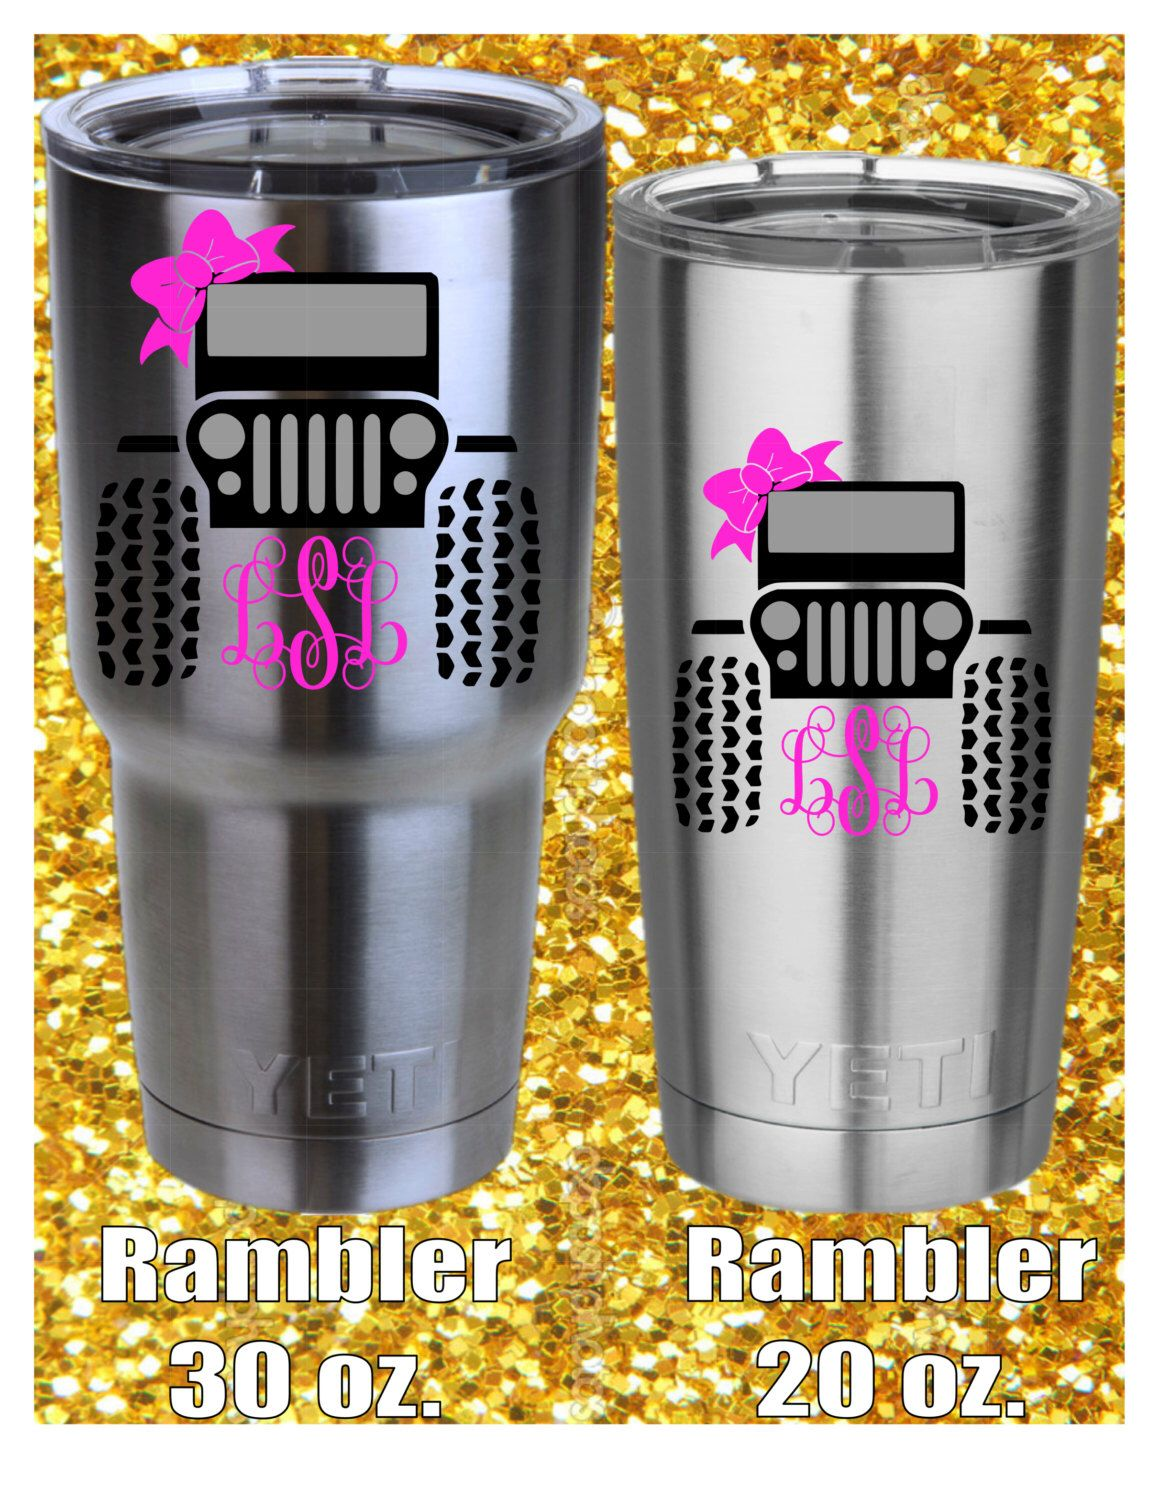 Monogram Jeep Girl Yeti Decal Itz A JEEP Thing Pinterest - Jeep vinyls for yeti cups